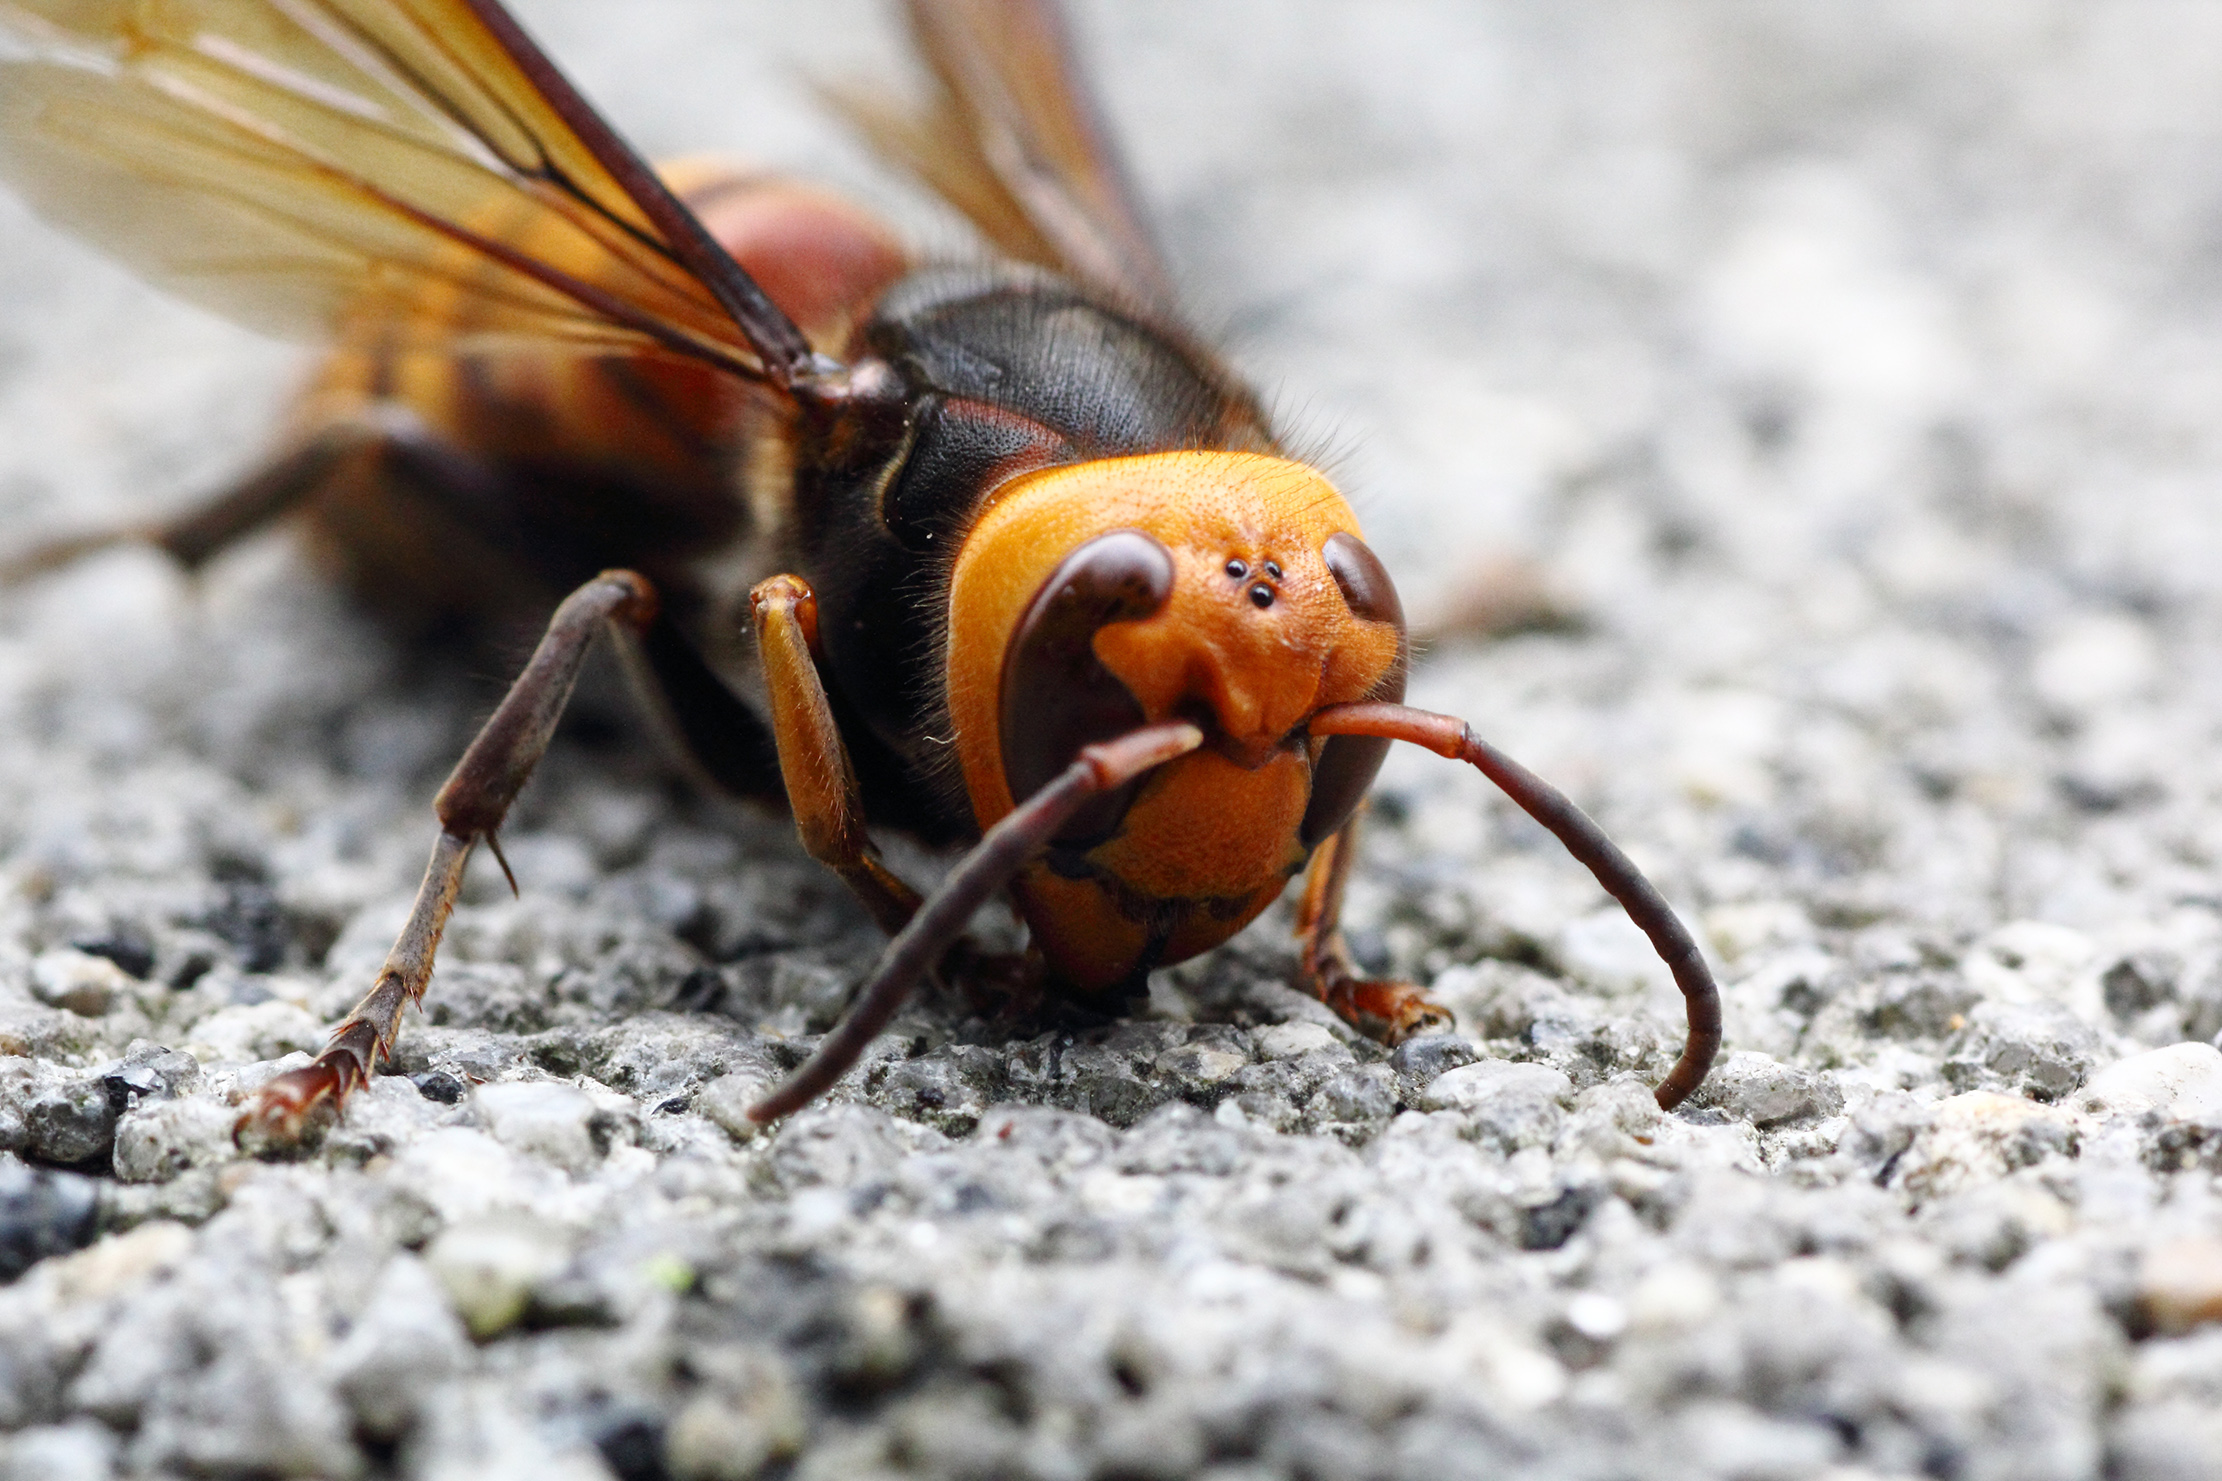 The giant hornet is a formidable insect, with a bright orange face.